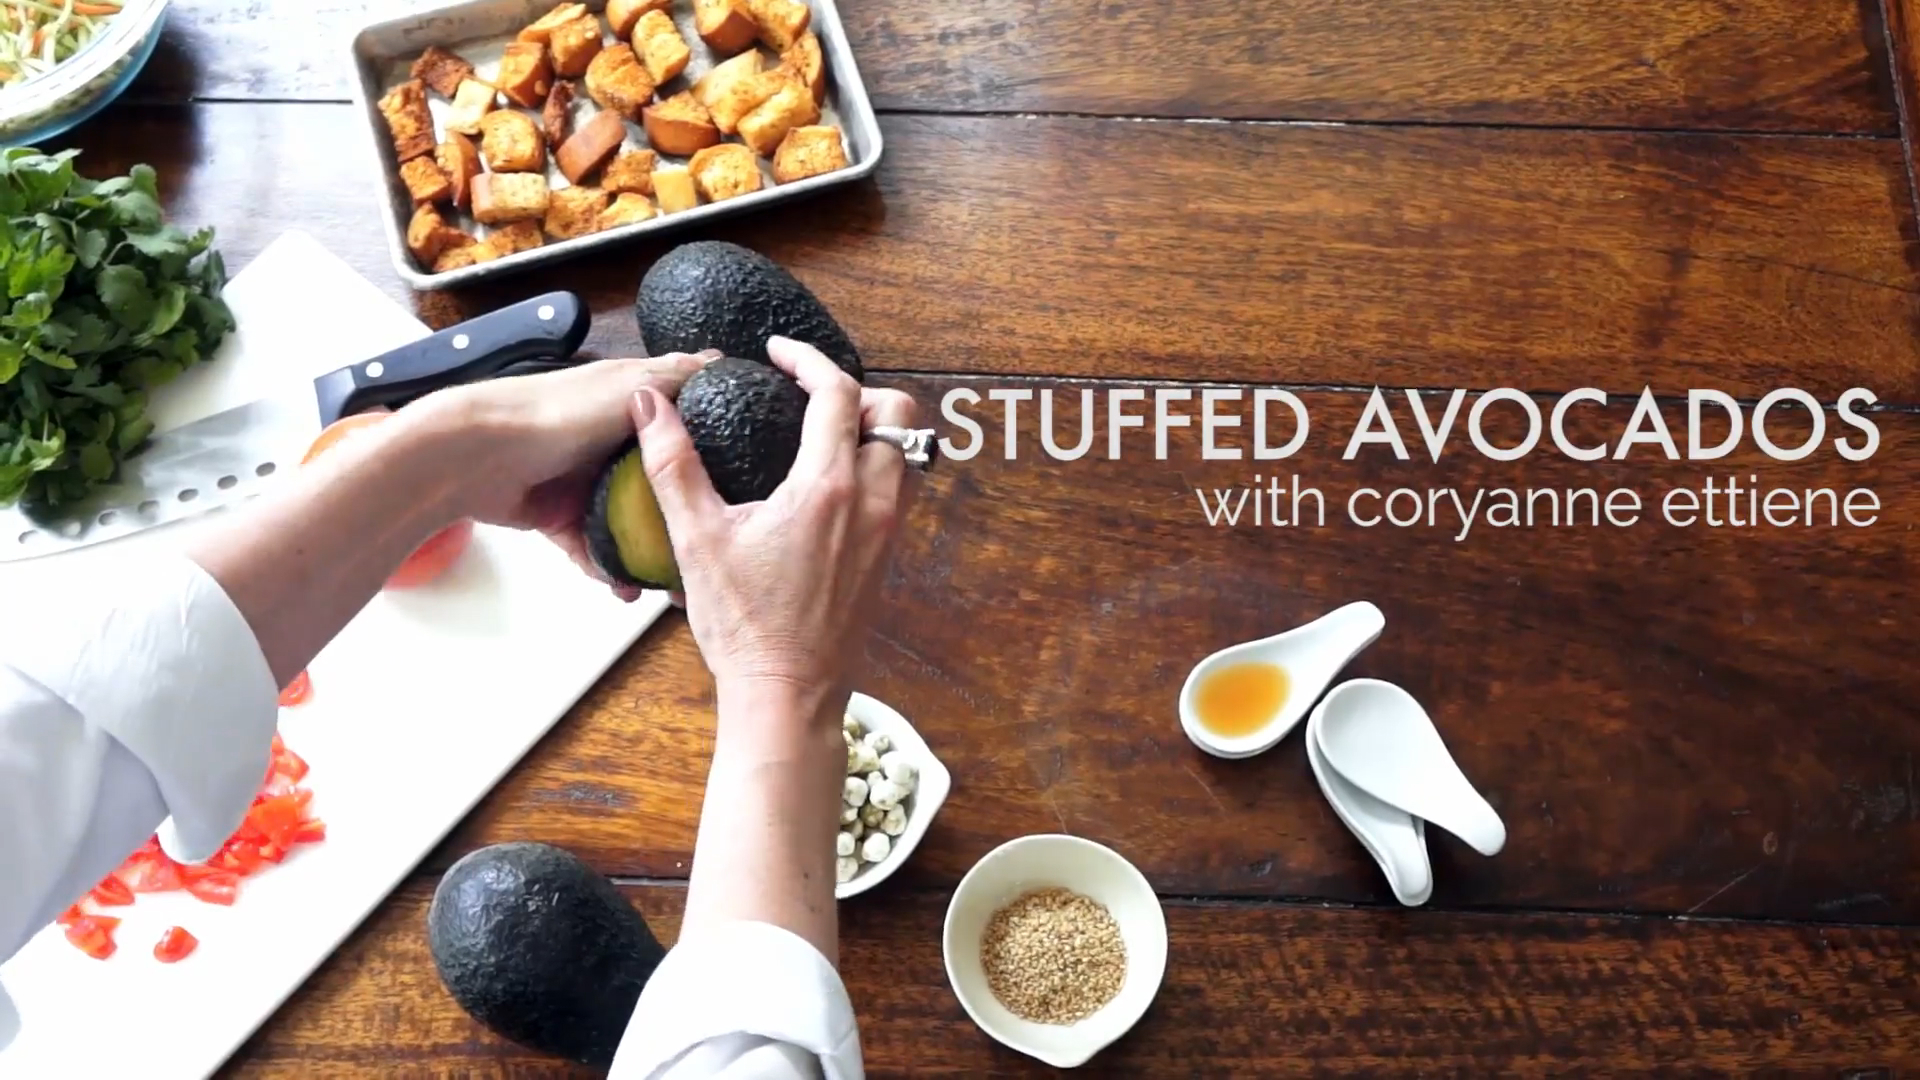 How to Make Stuffed Avocados